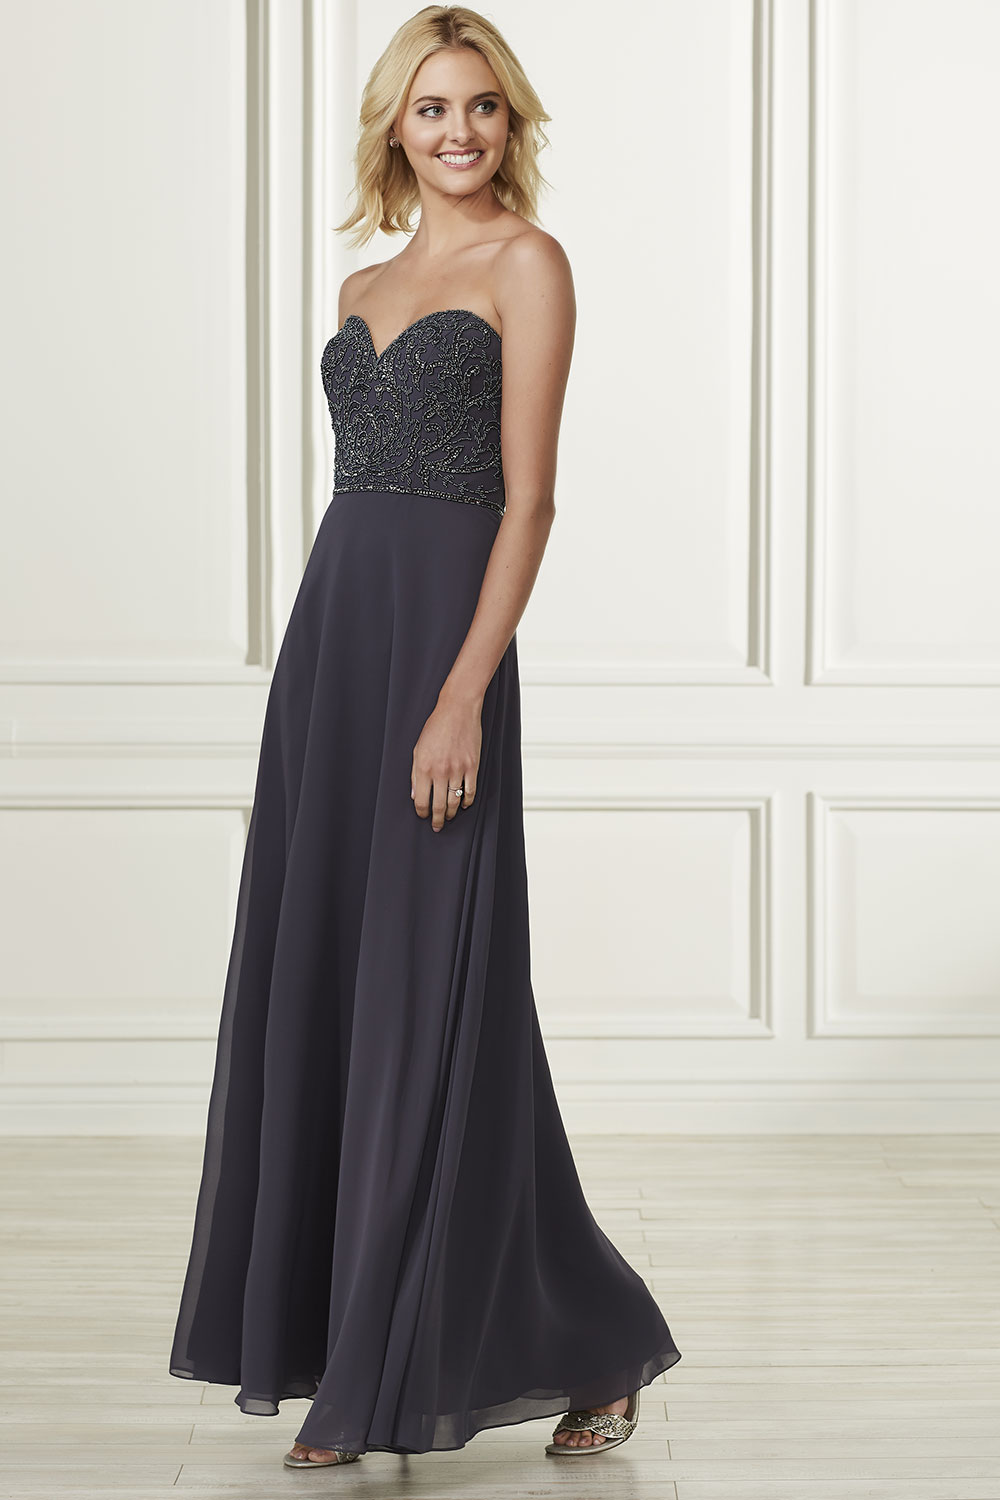 bridesmaid-dresses-adrianna-papell-platinum-26920